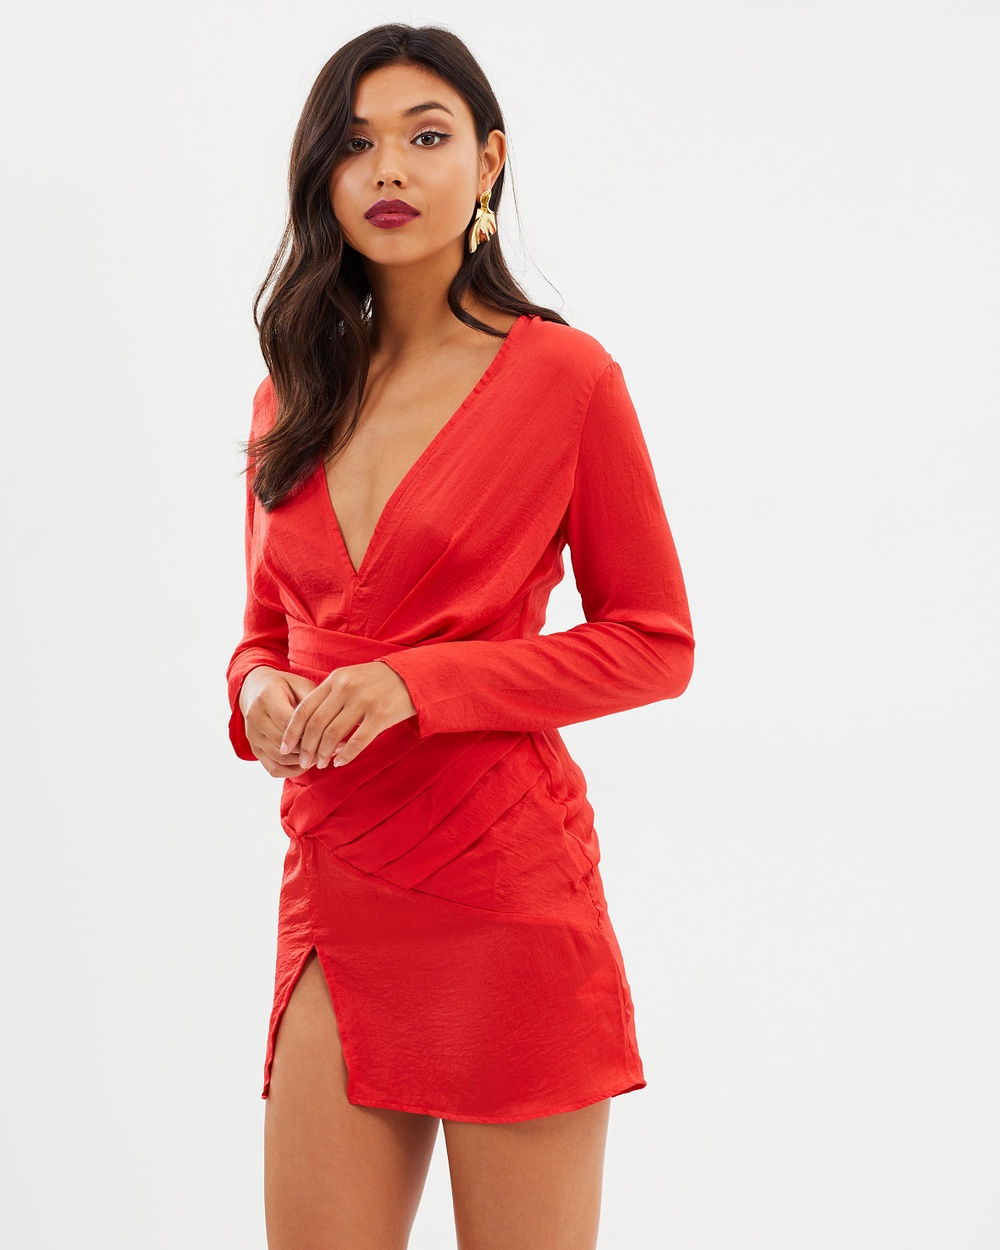 Missguided Silky Long Sleeve Paneled Shift Dress Dresses Red Silky Long Sleeve Paneled Shift Dress